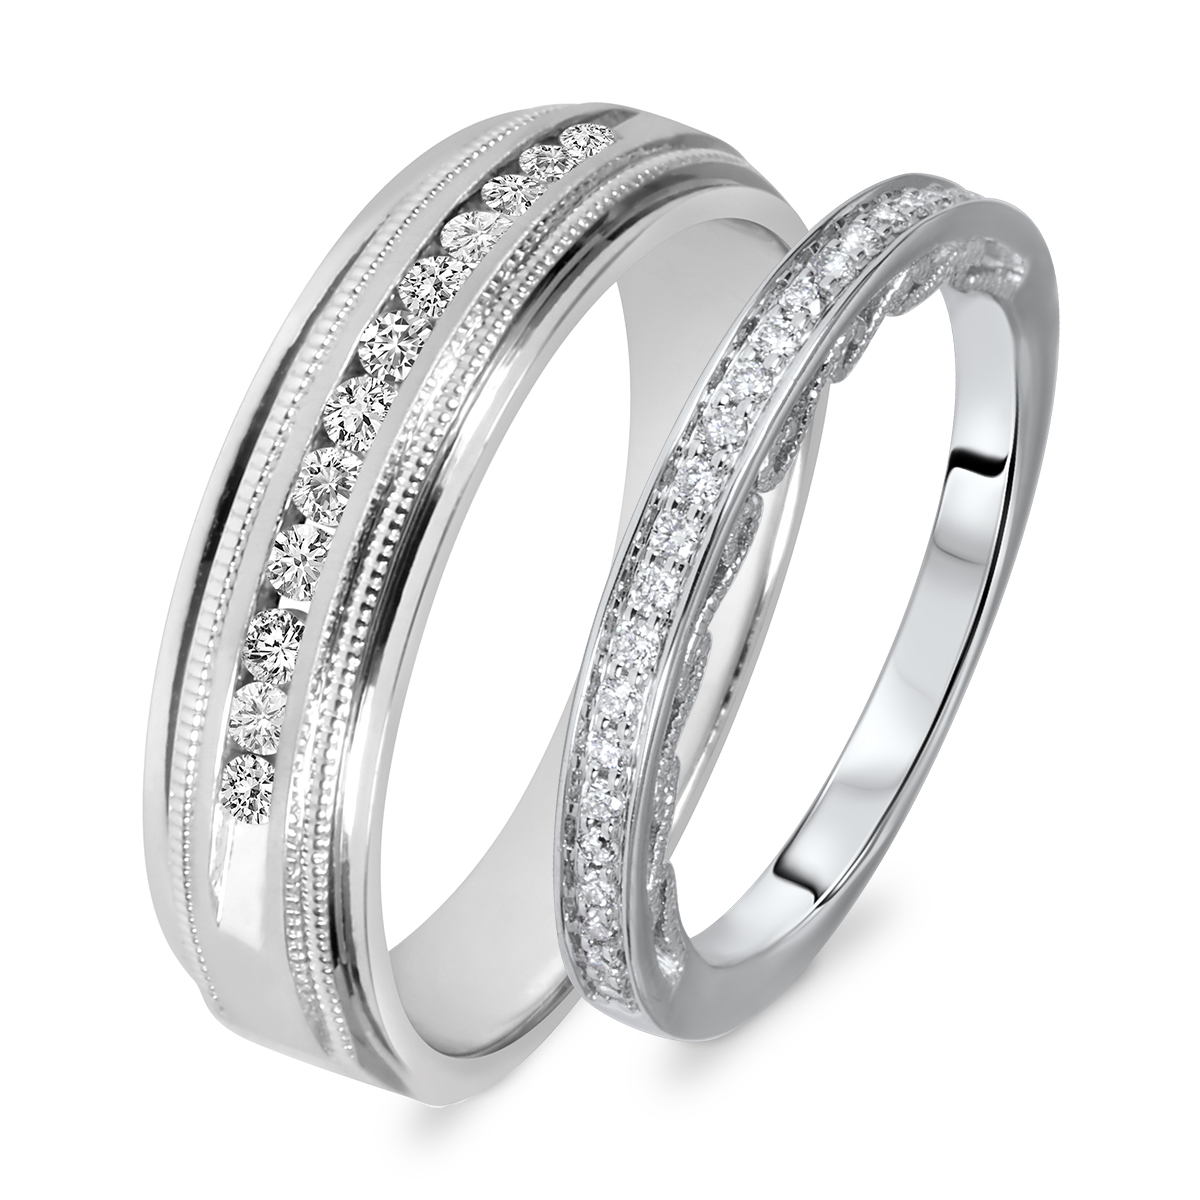 3 8 Carat TW Round Cut Diamond His And Hers Wedding Band Set 10K White Gold